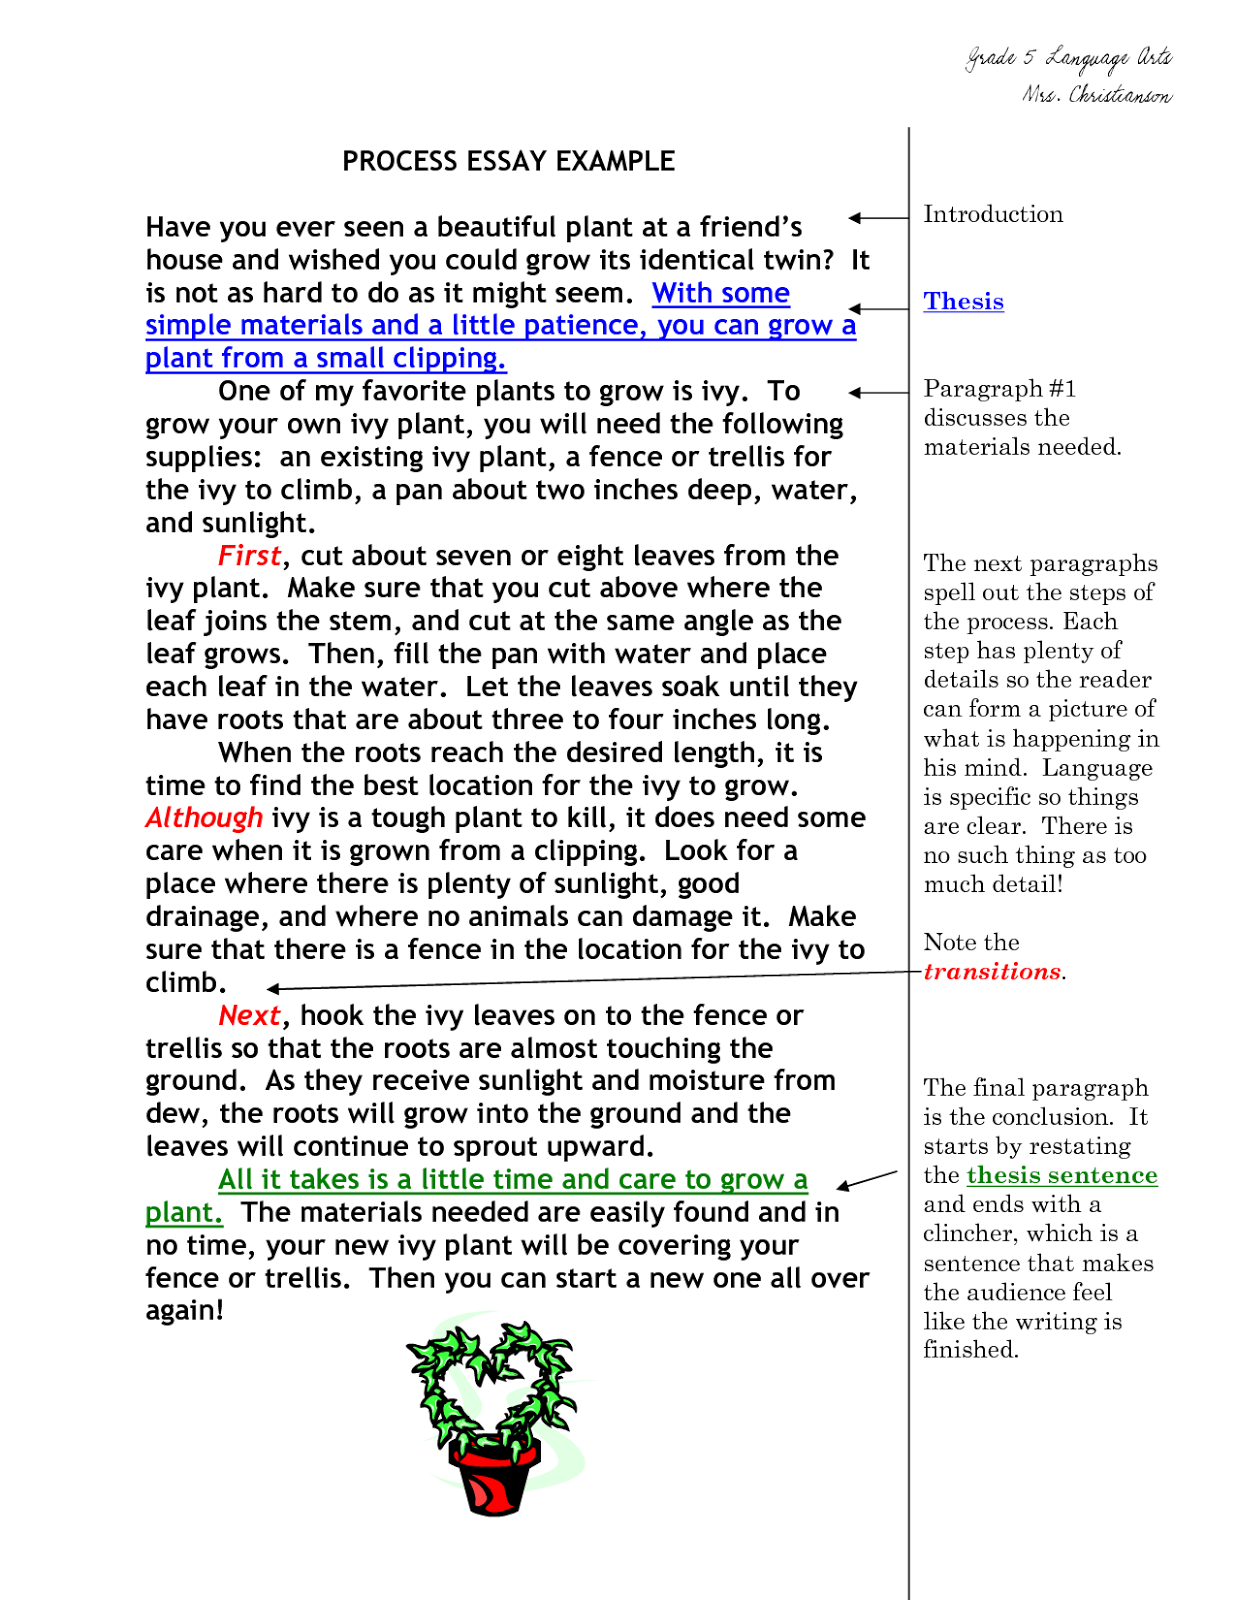 types of damages essay